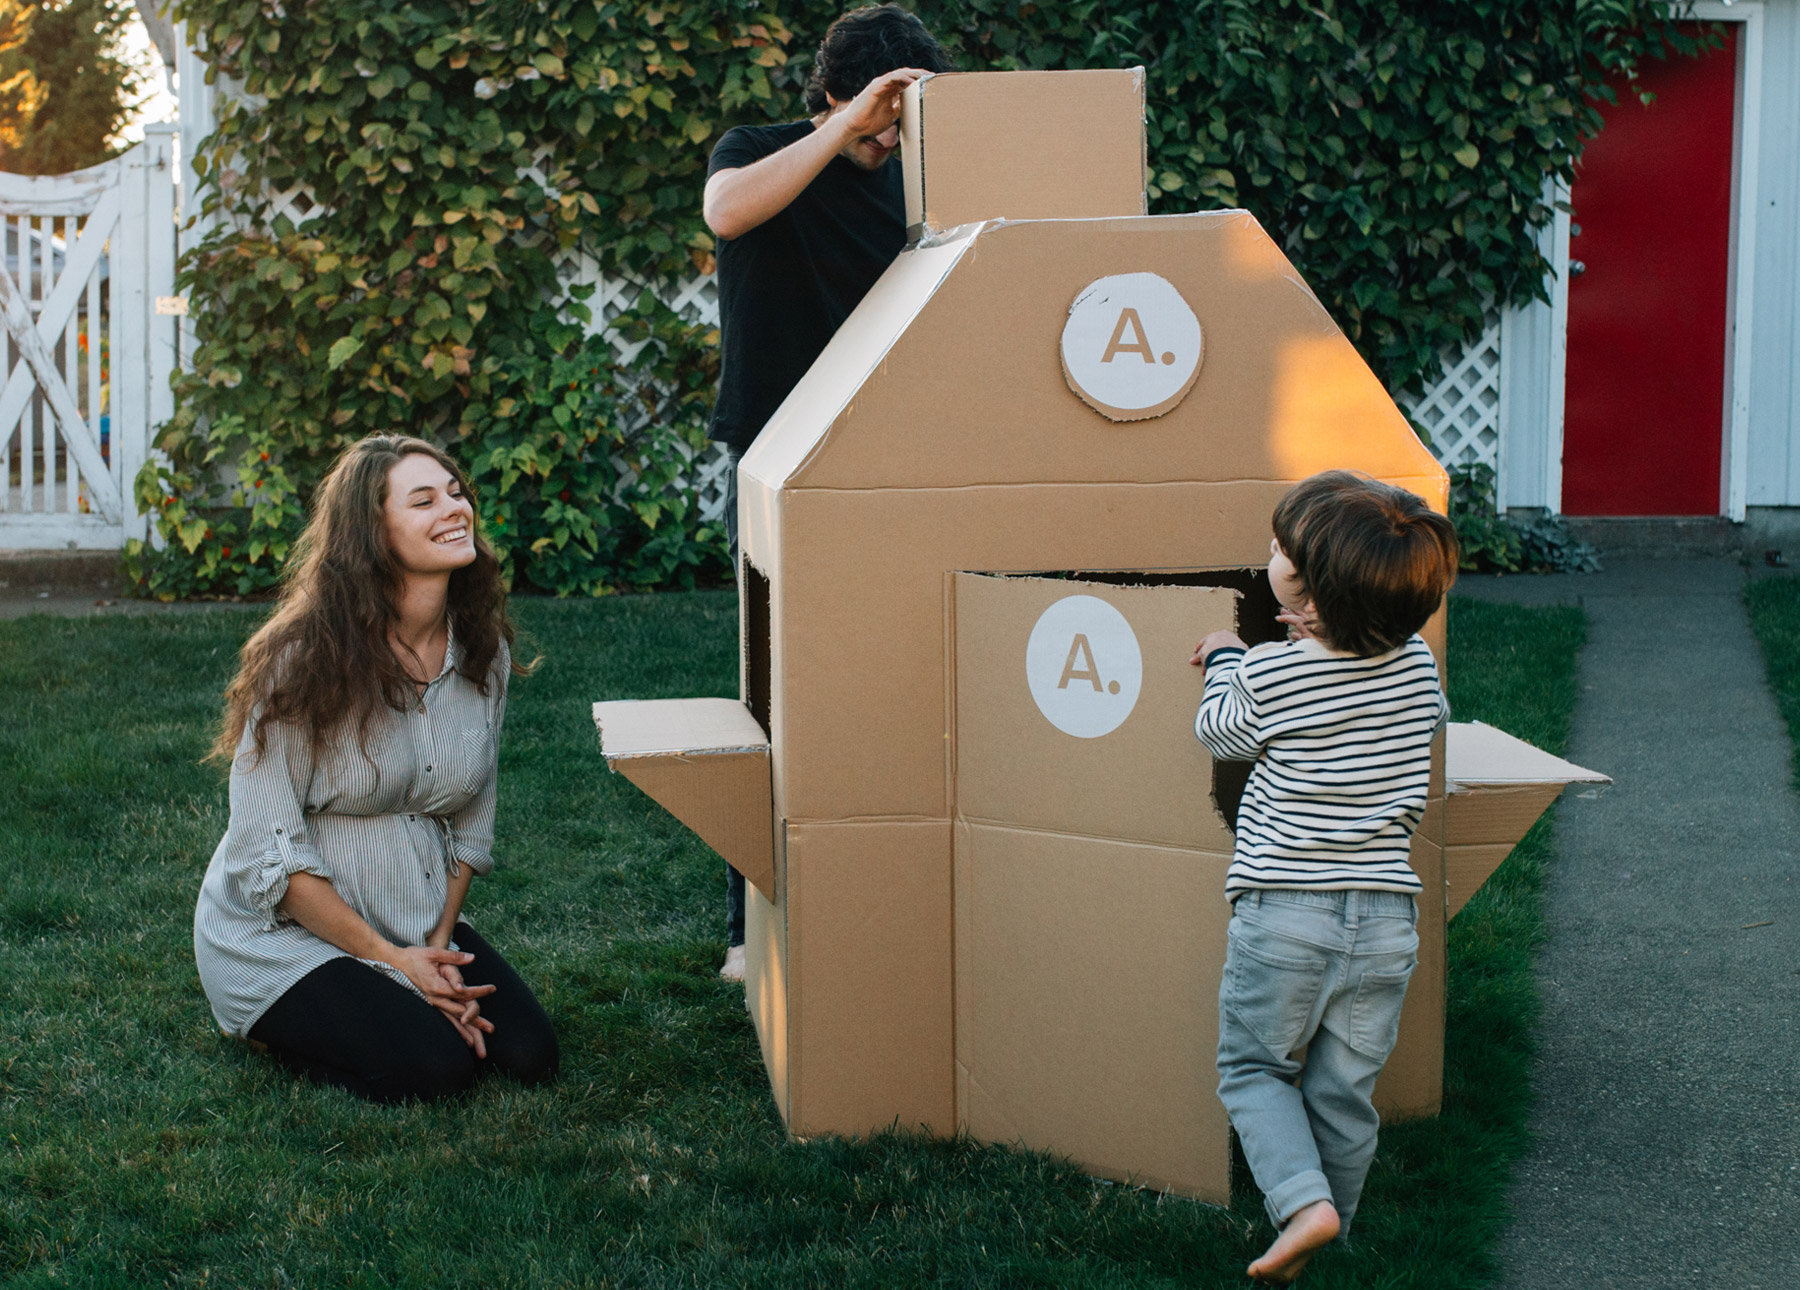 A family enjoys playing with a cardboard box fort. There are awesome details like a chimney, door, and window ledges.